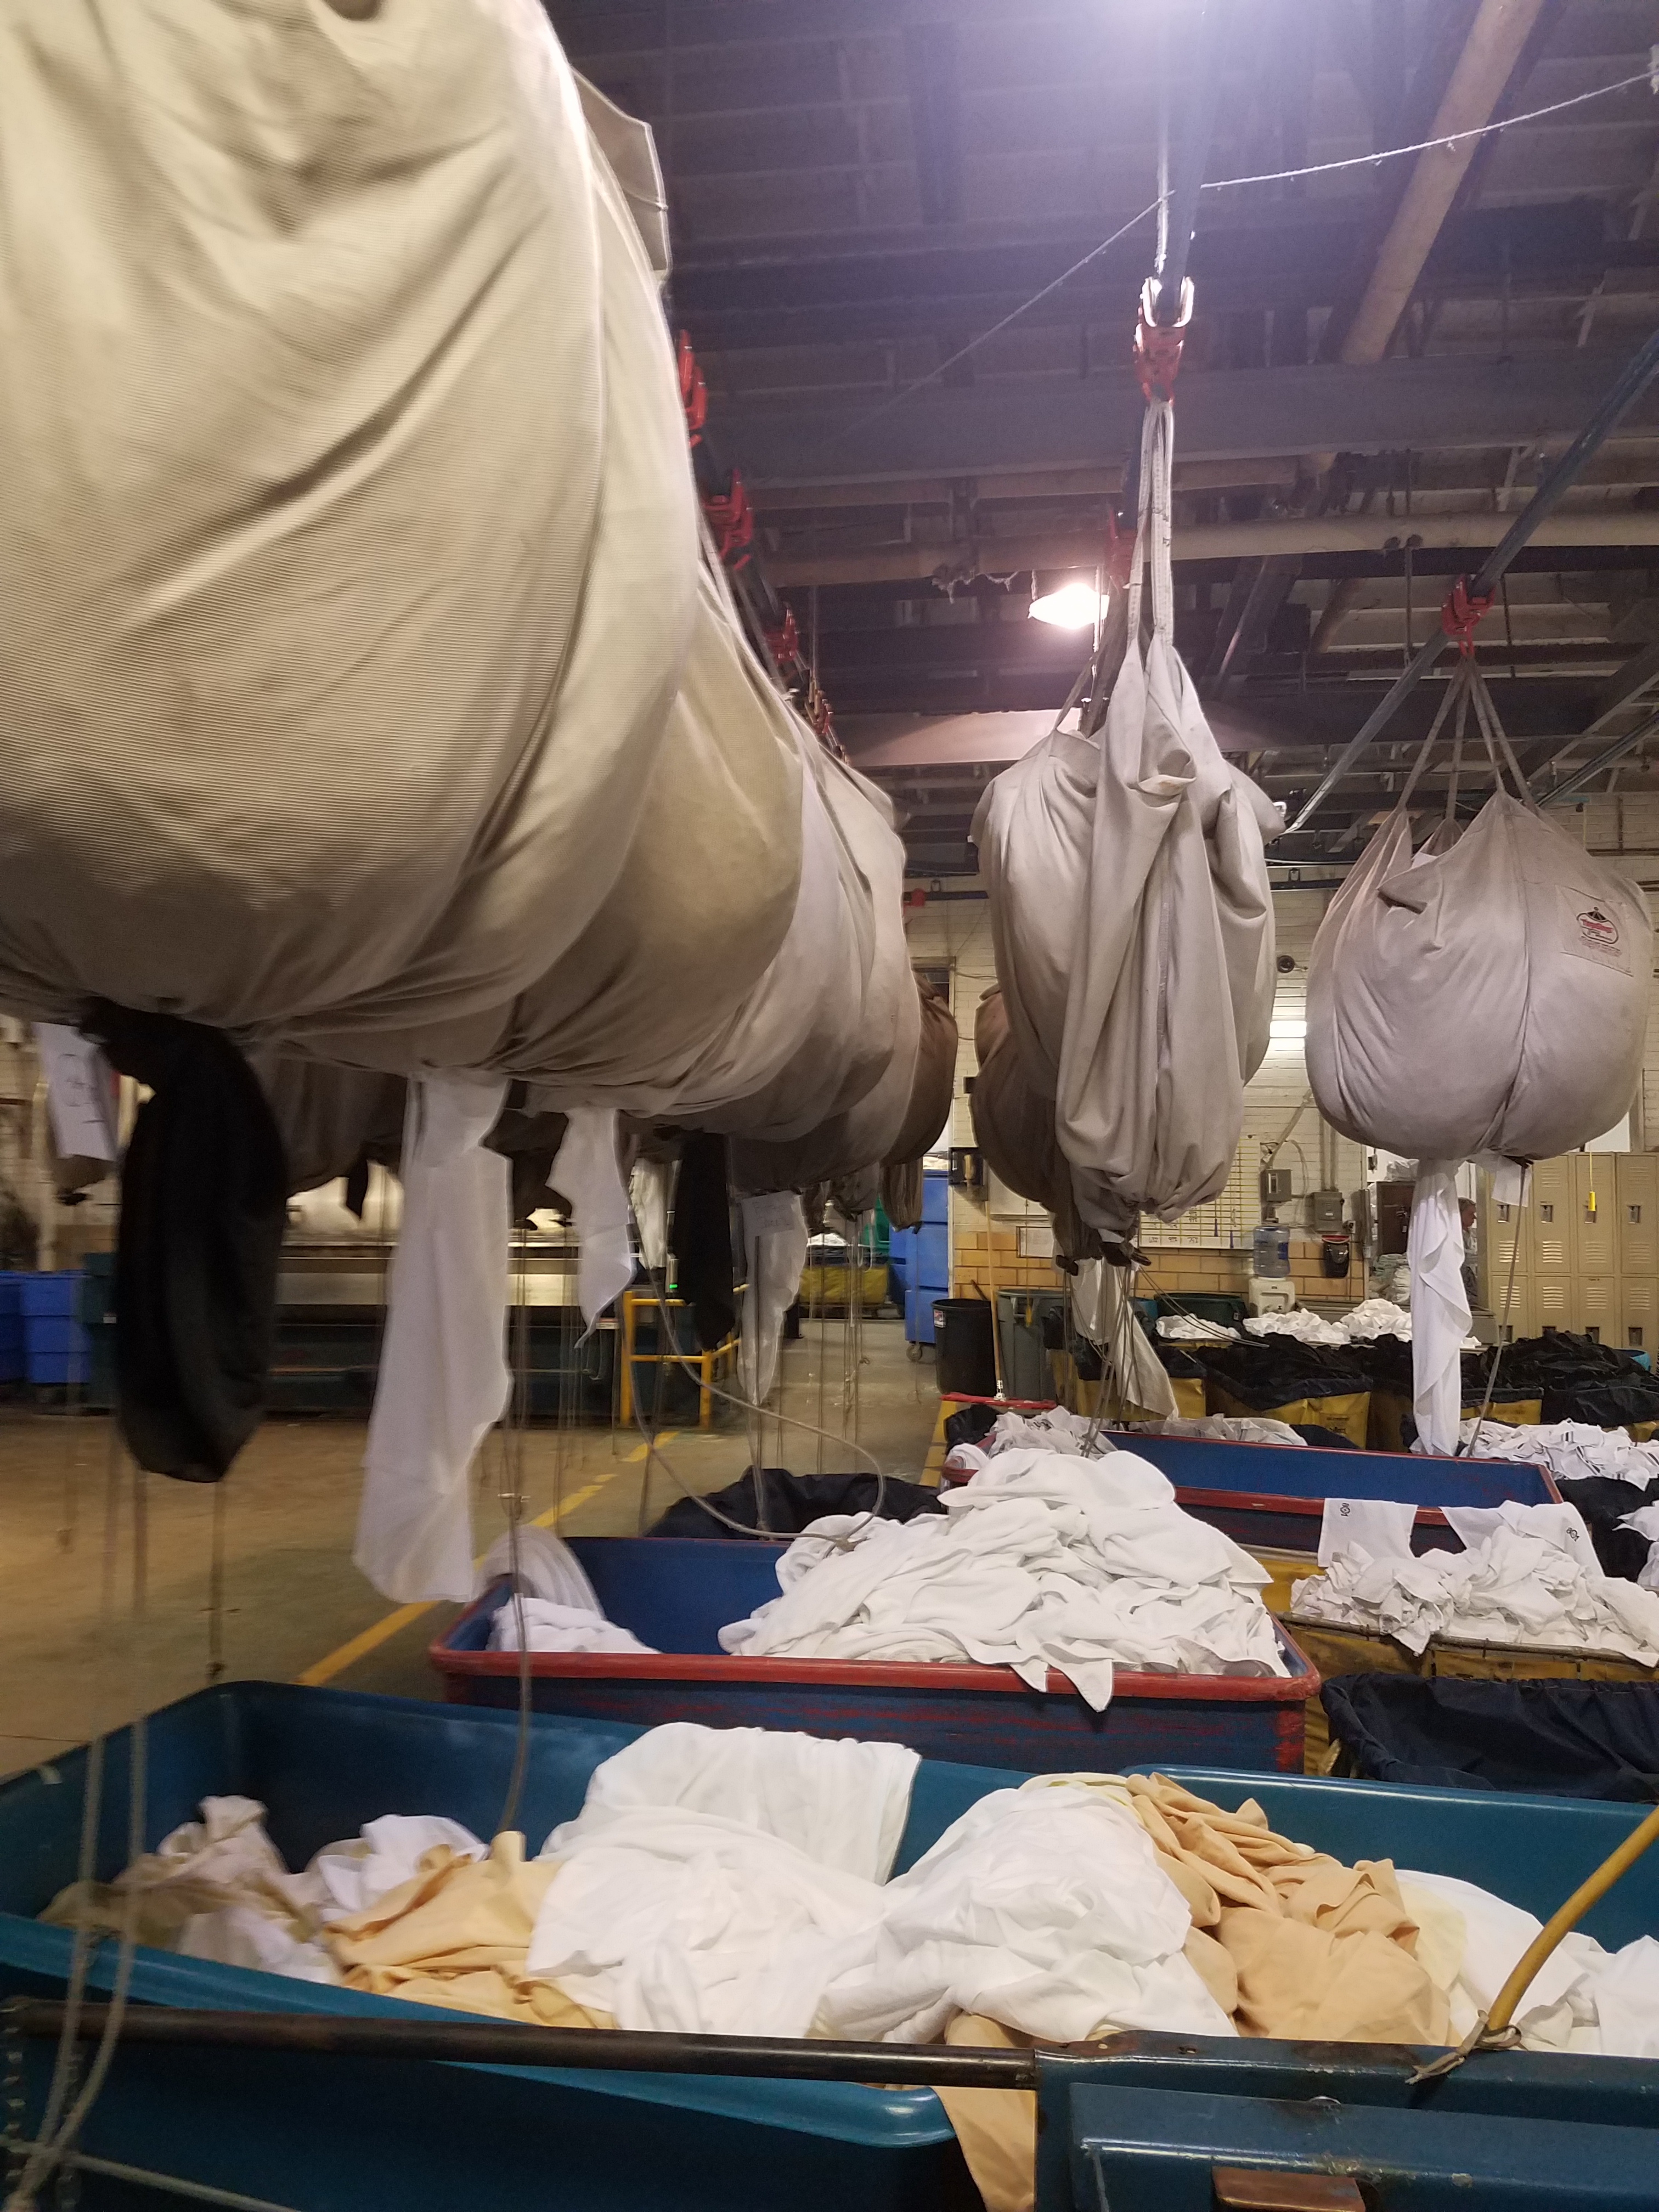 What Does a Linen Service Do